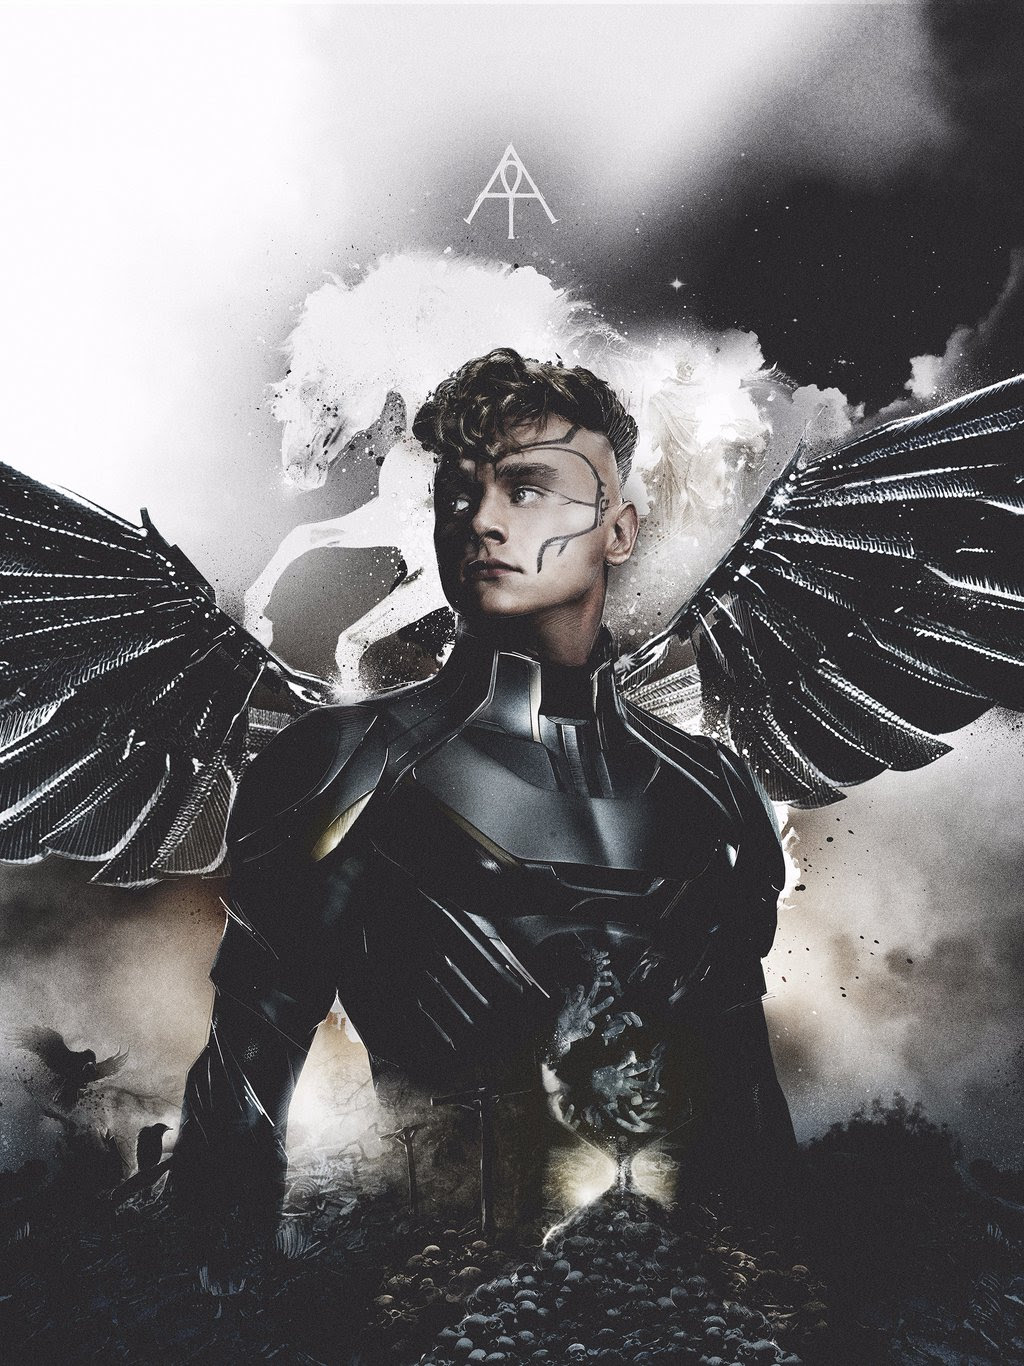 ... out the corresponding X-Men: Apocalypse character posters, below